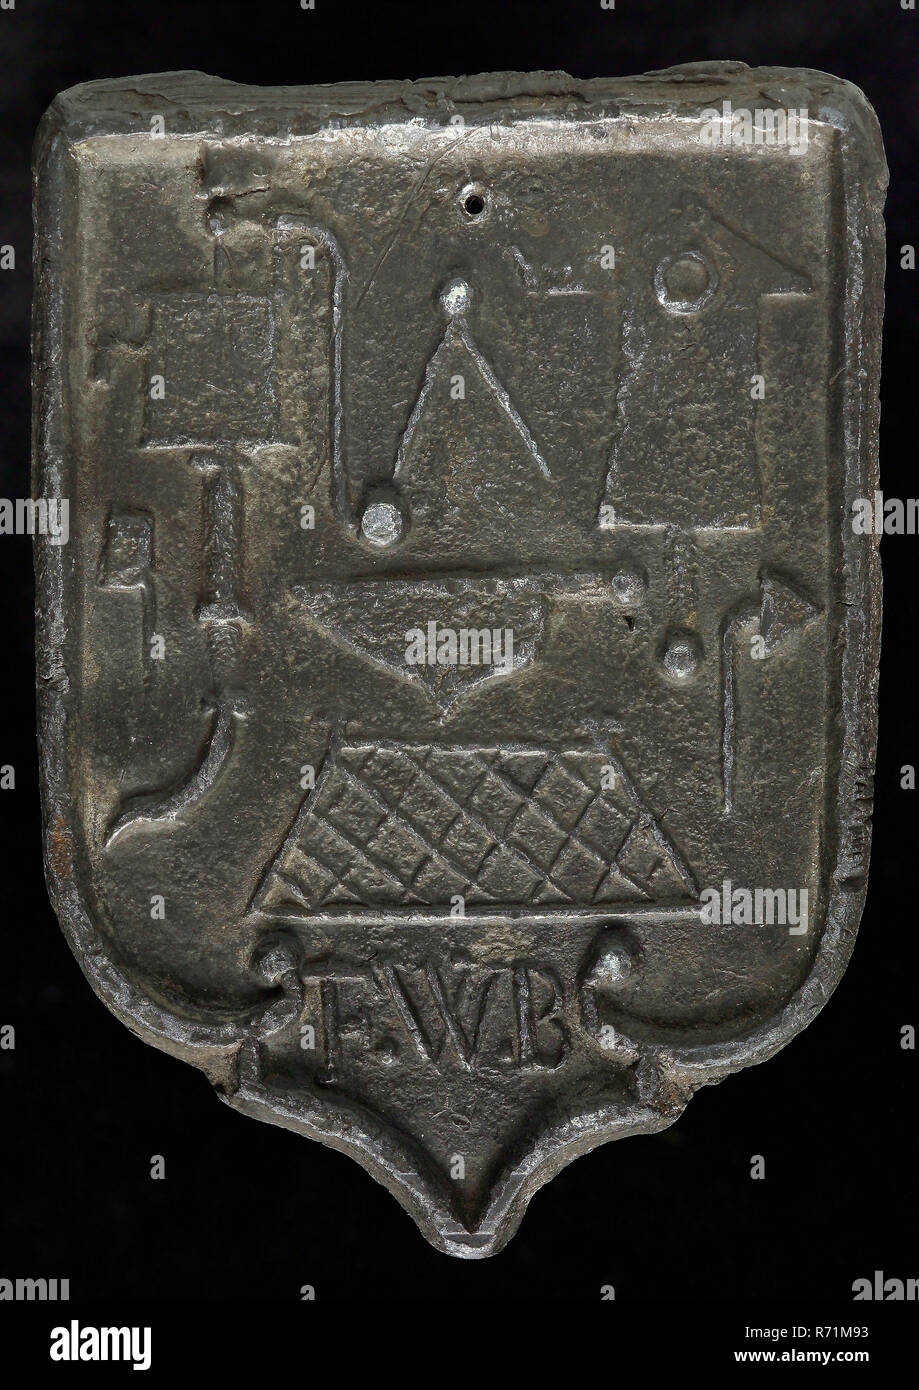 FWB, Roof lead, shield-shaped cover plate with initials FWB